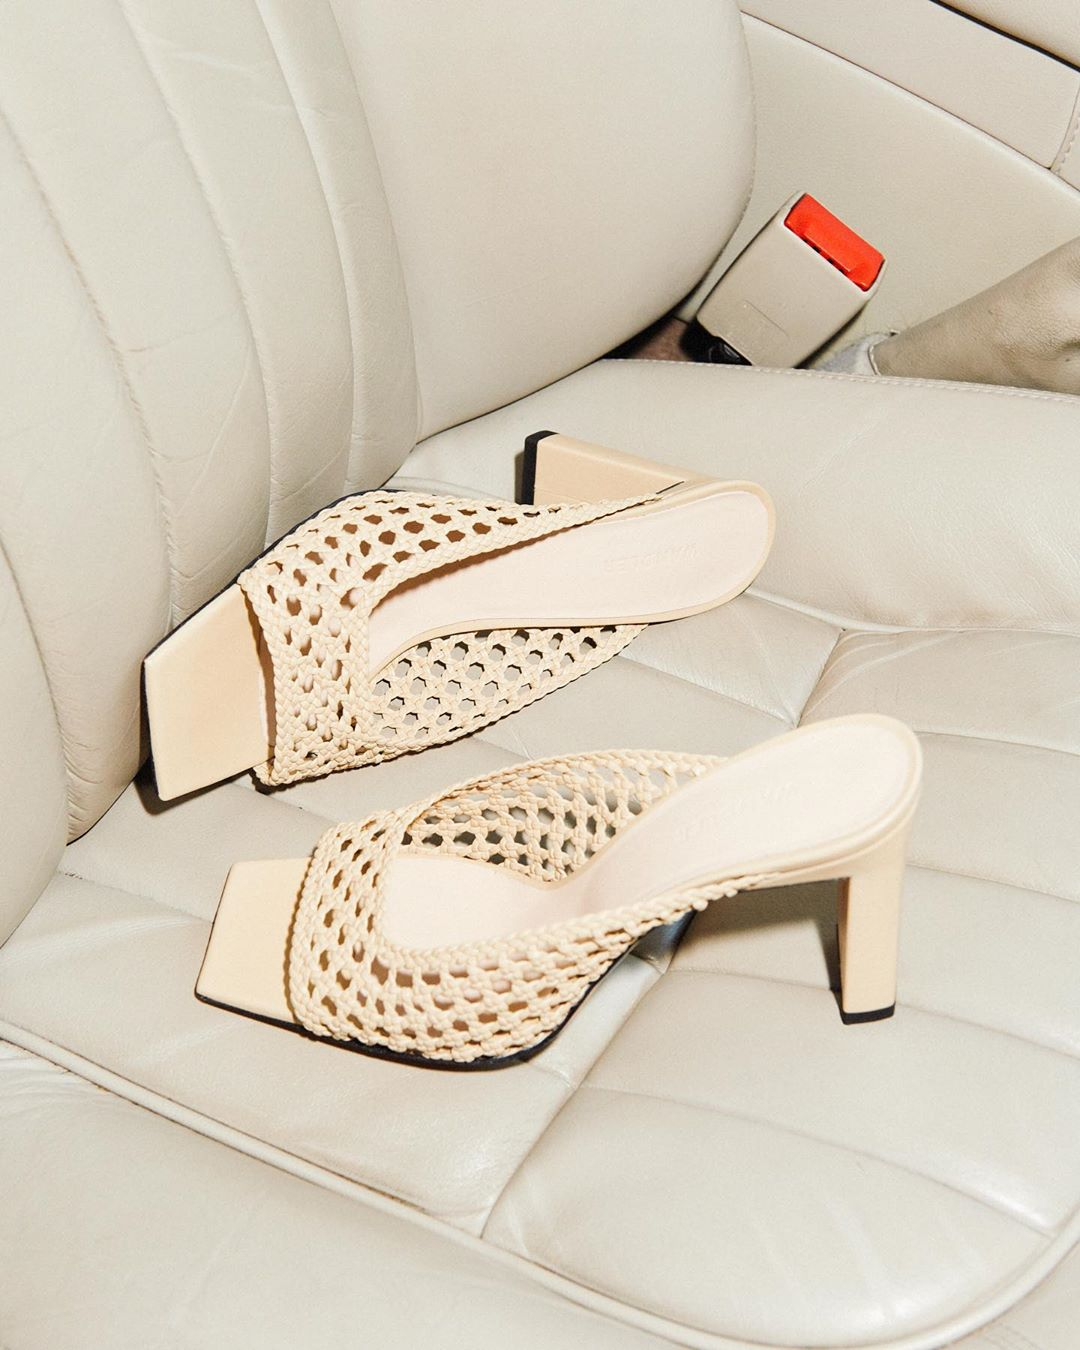 wandler-isa-mesh-sandals-cream-instagram